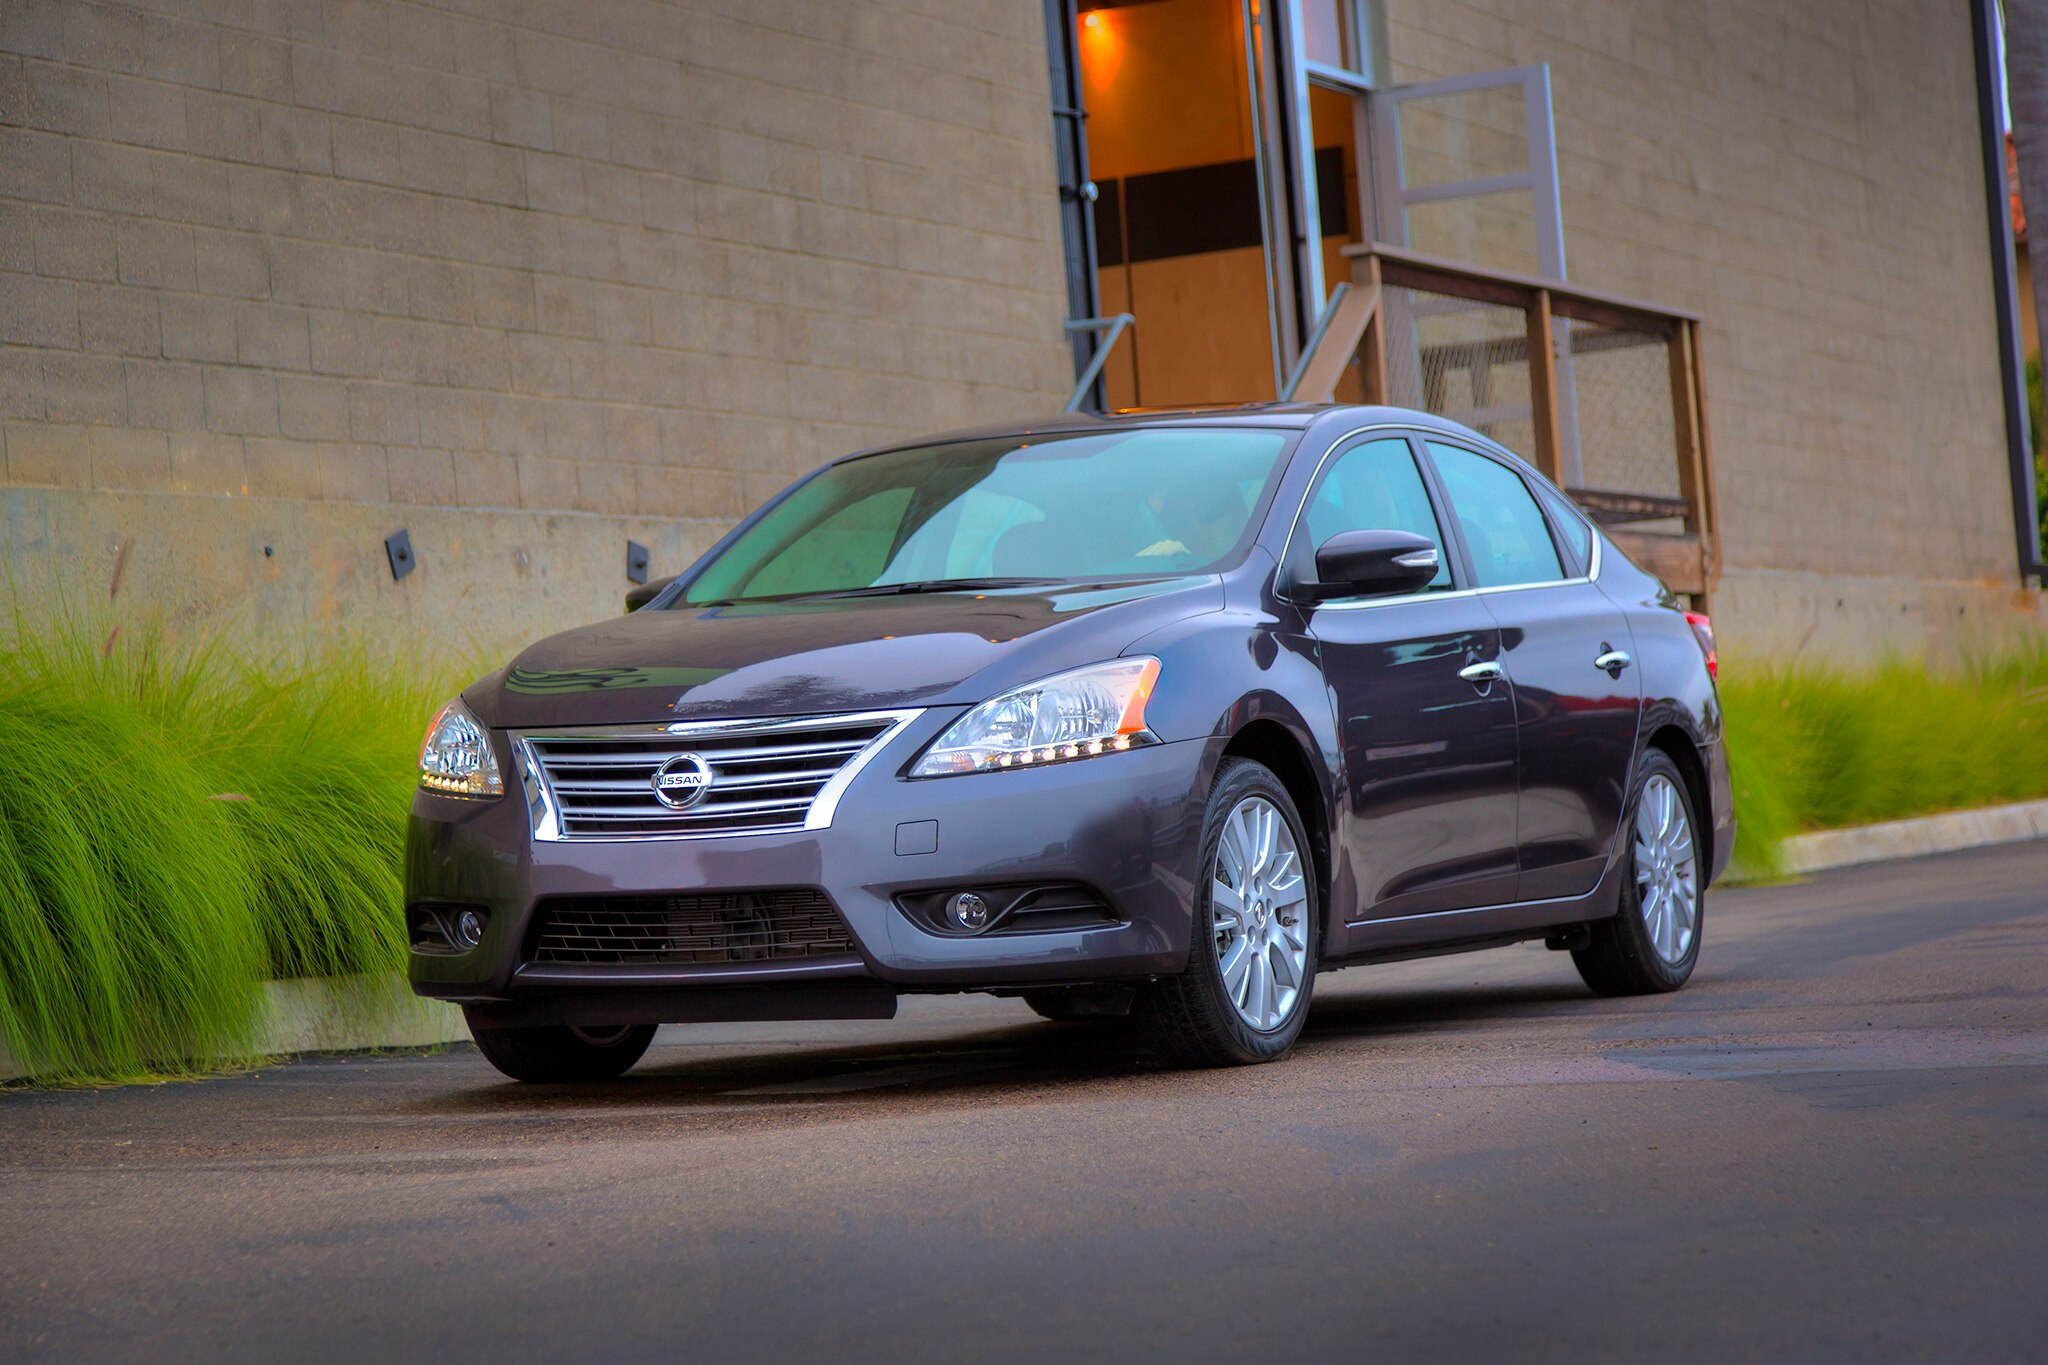 2015 nissan sentra price increases as more equipment added photo